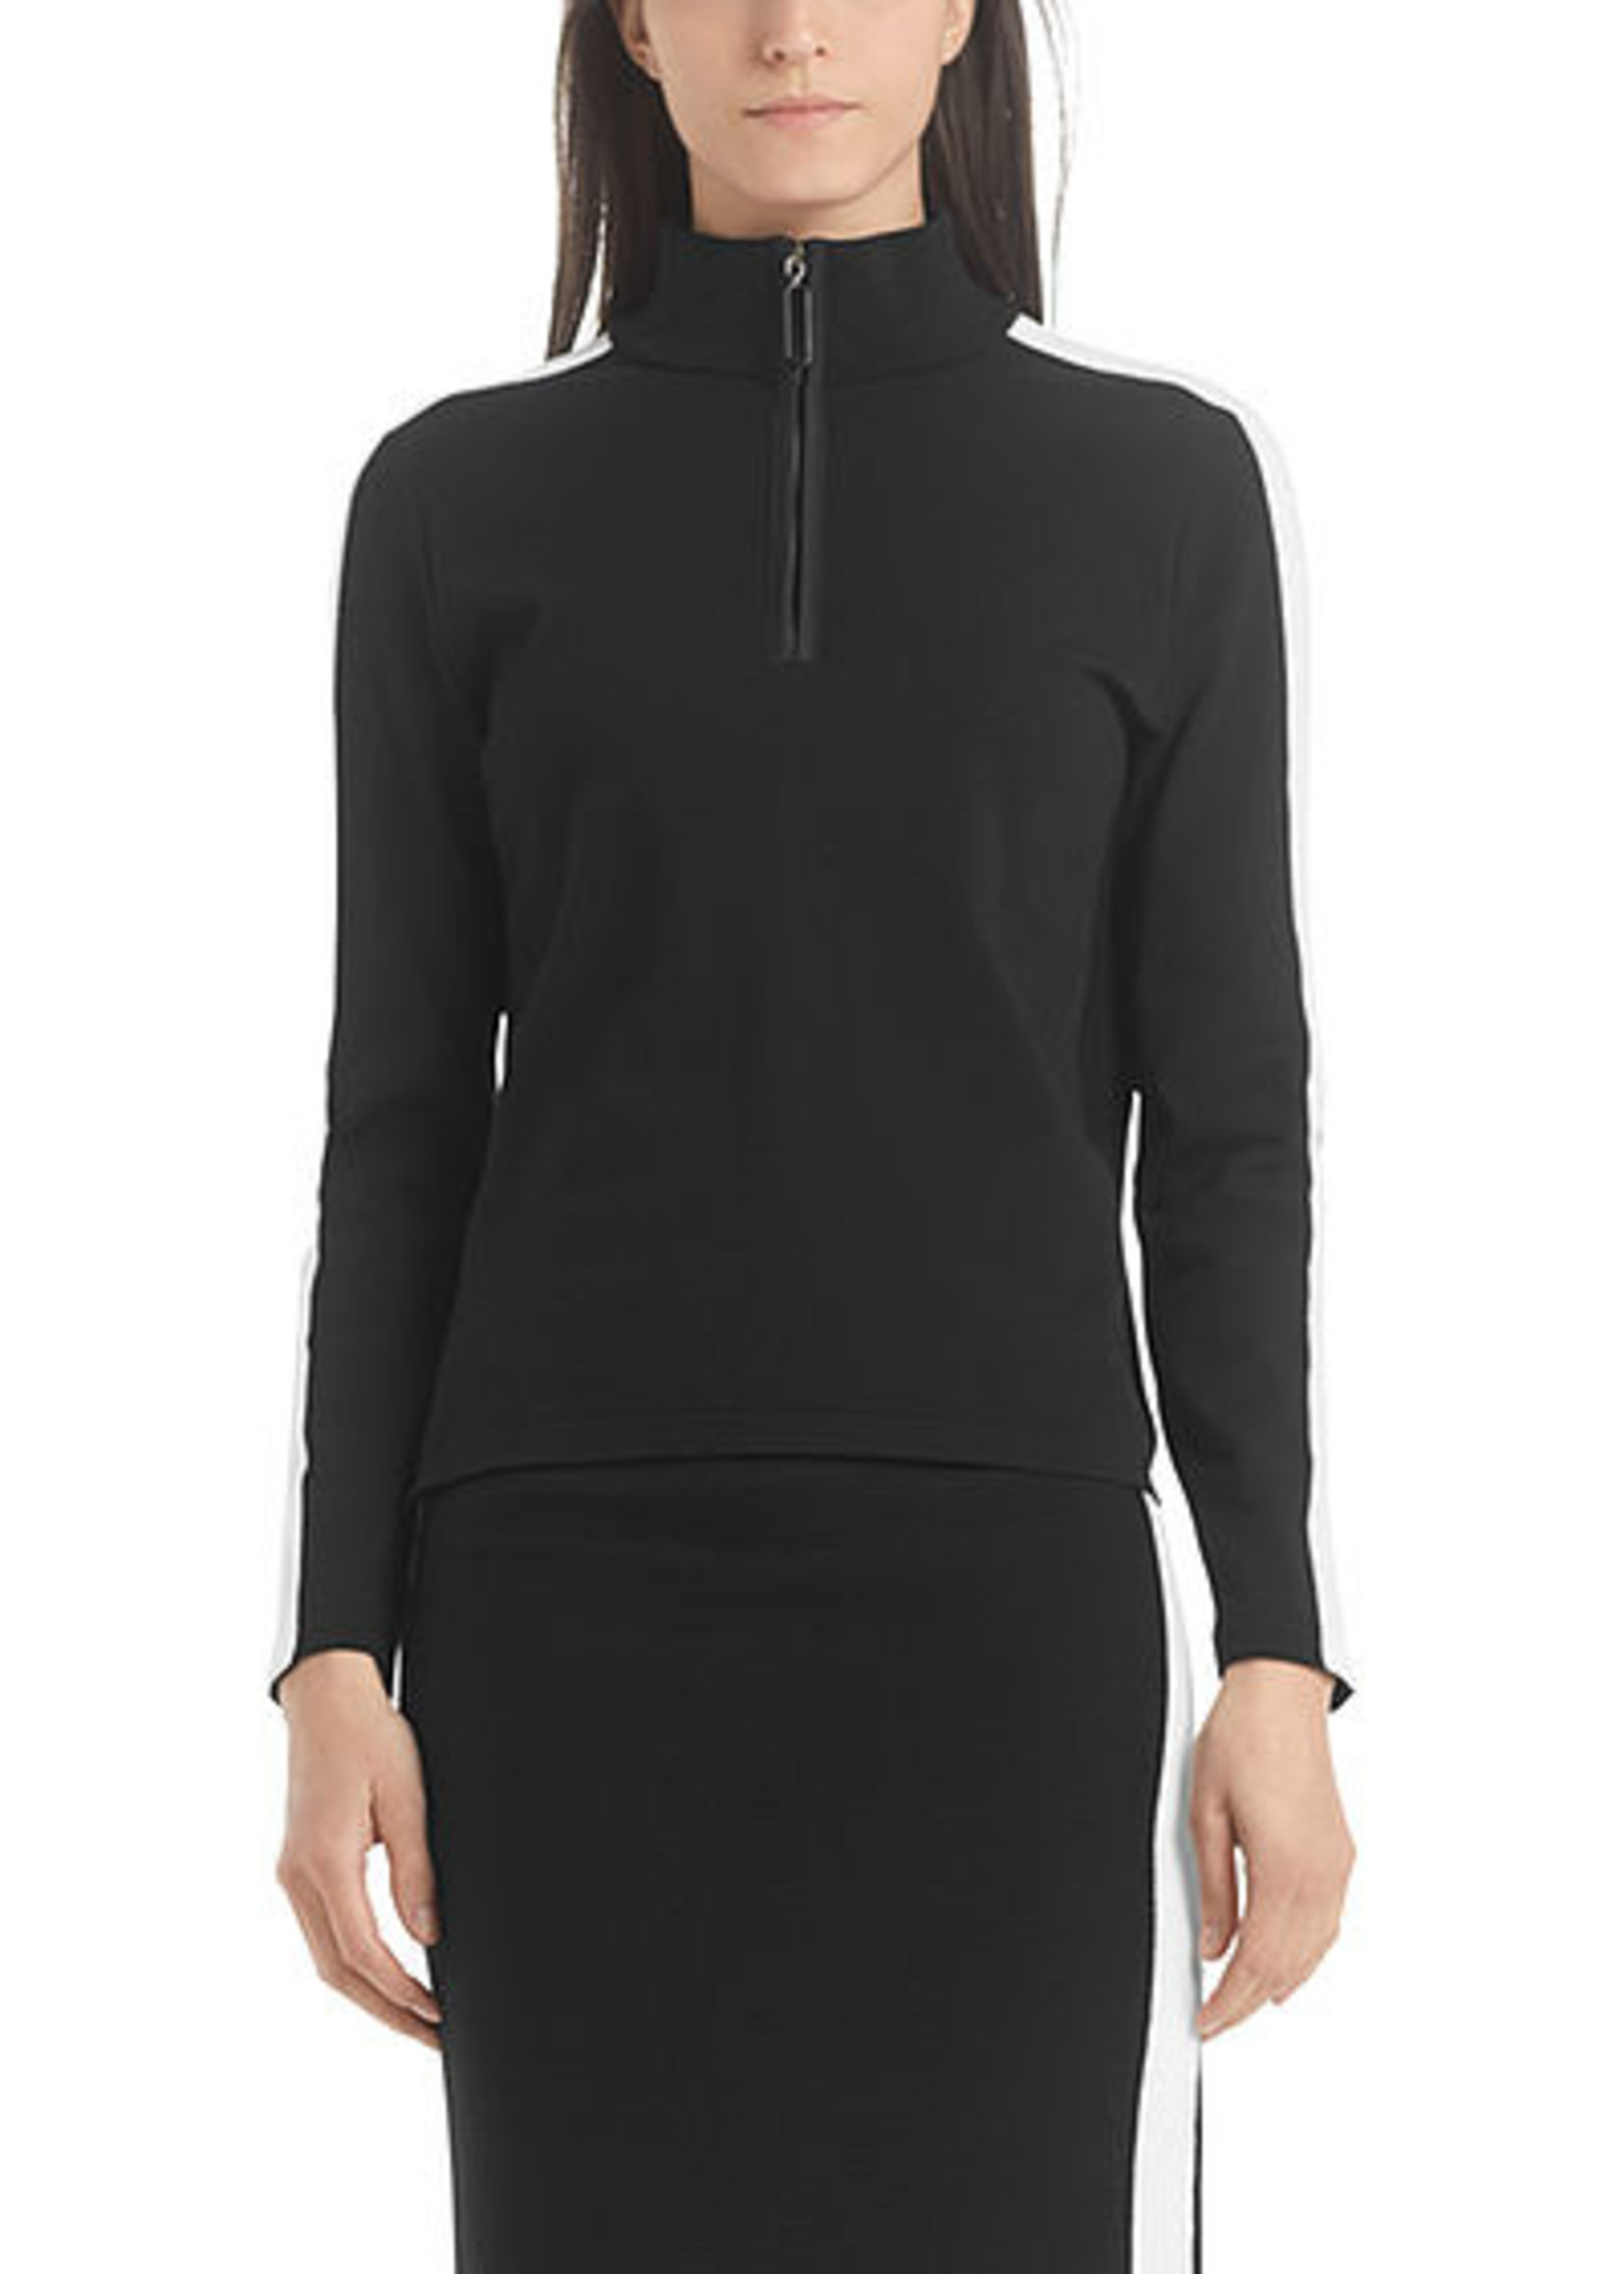 Marccain Sports Sweater RS 41.47 M34 black and white